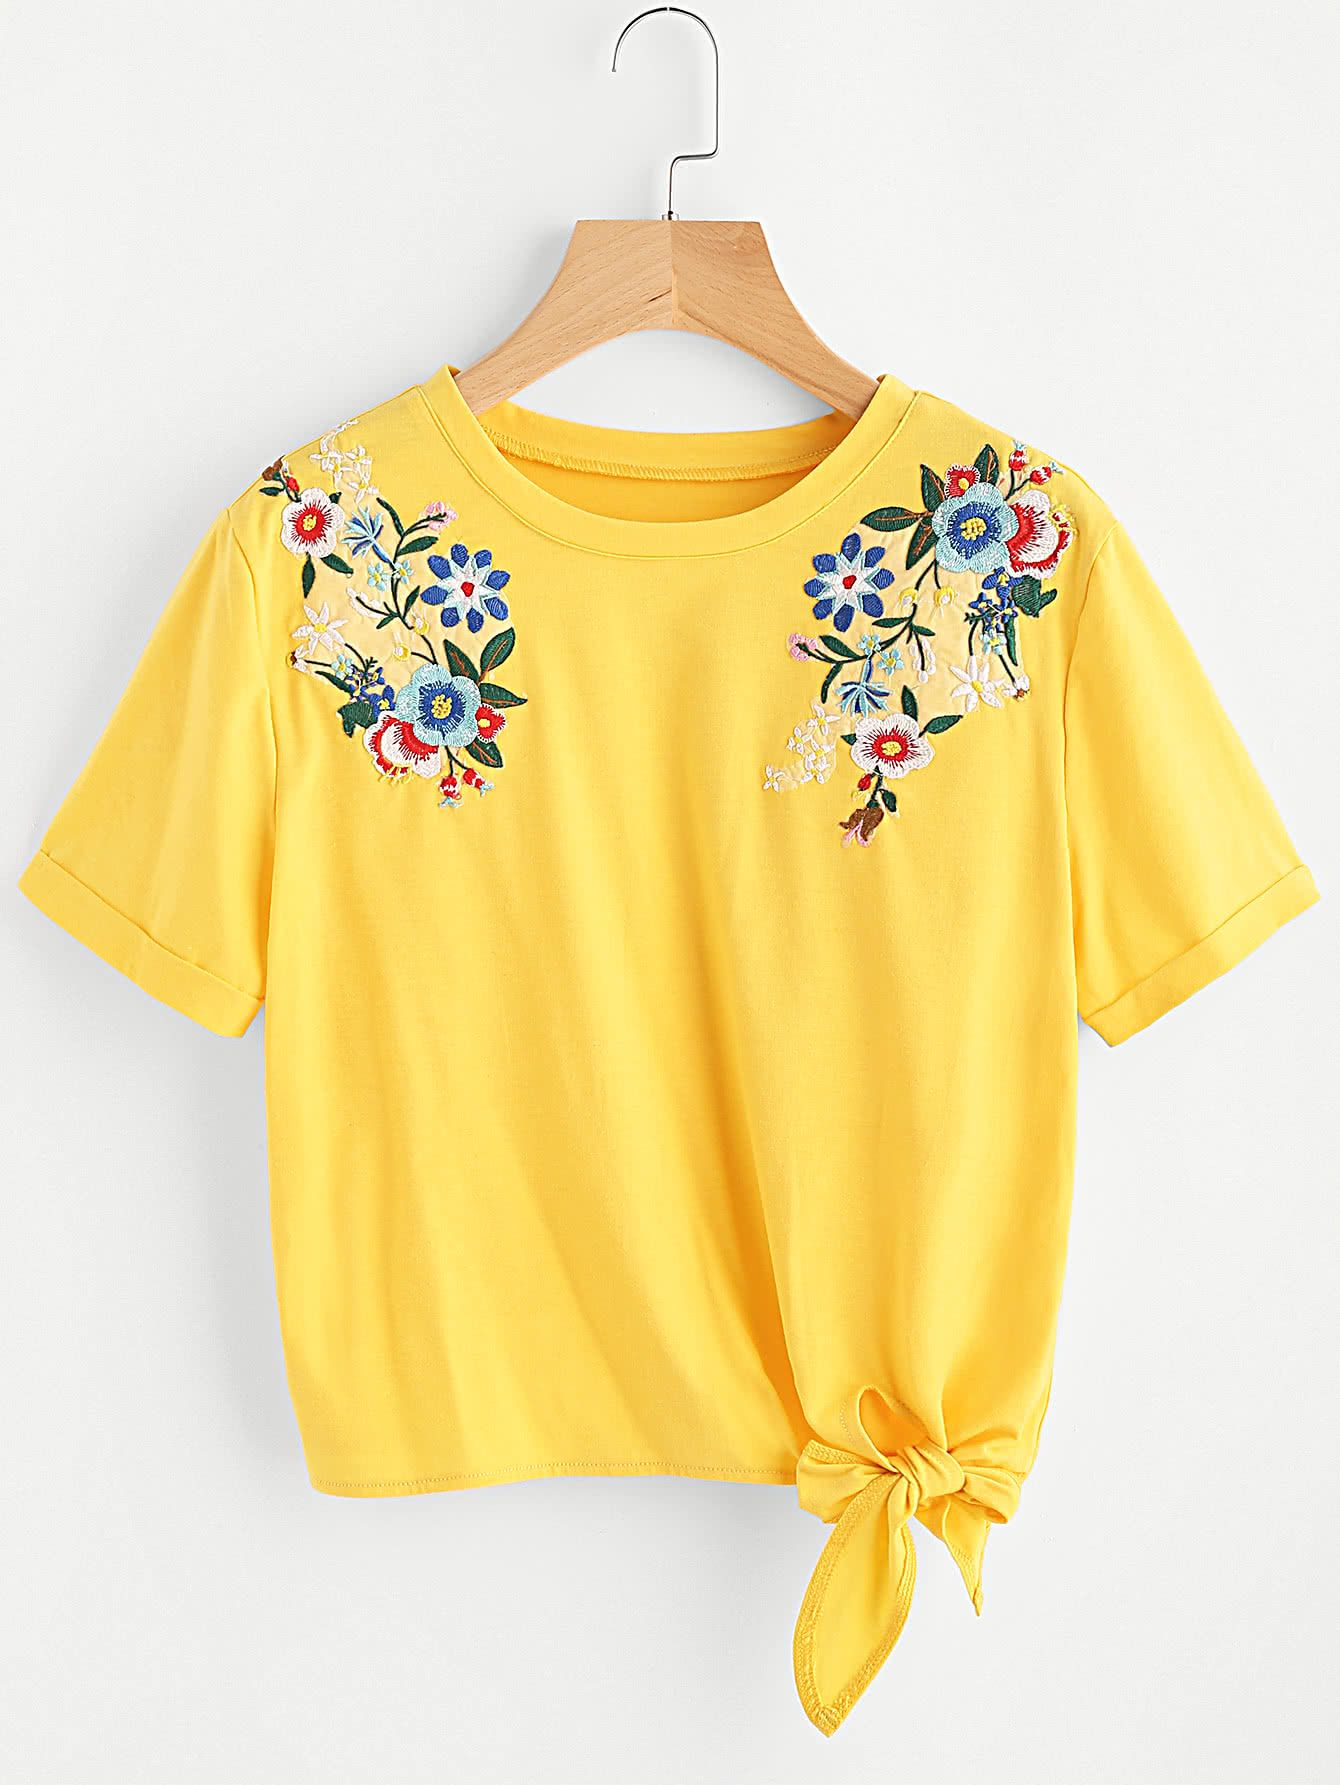 c7c85350a Shop Embroidered Flower Applique Knot Hem Cuffed Tee online. SheIn offers  Embroidered Flower Applique Knot Hem Cuffed Tee & more to fit your  fashionable ...